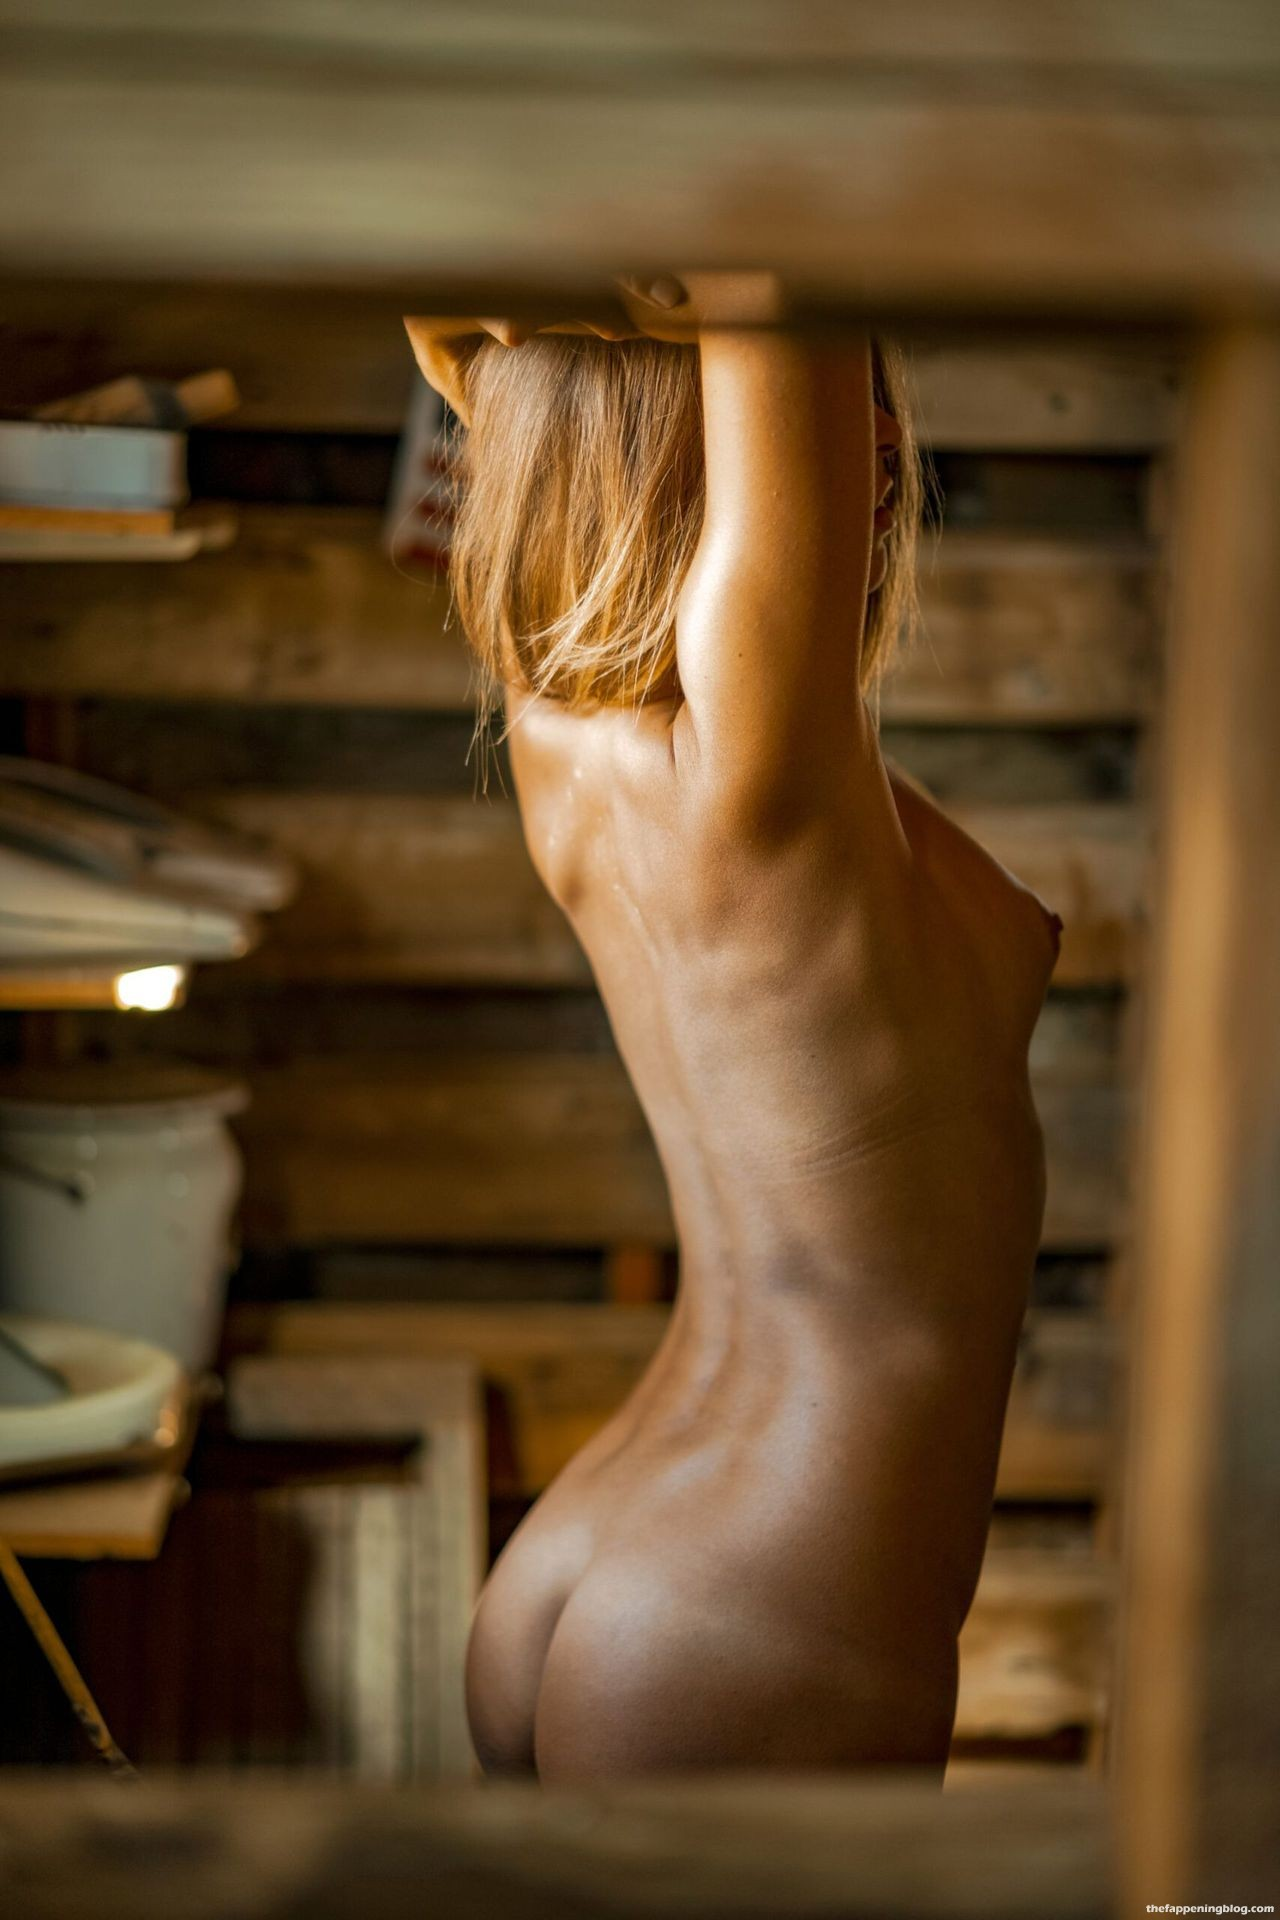 Marisa-Papen-Stunning-Naked-Body-17-scaled1-thefappeningblog.com_.jpg